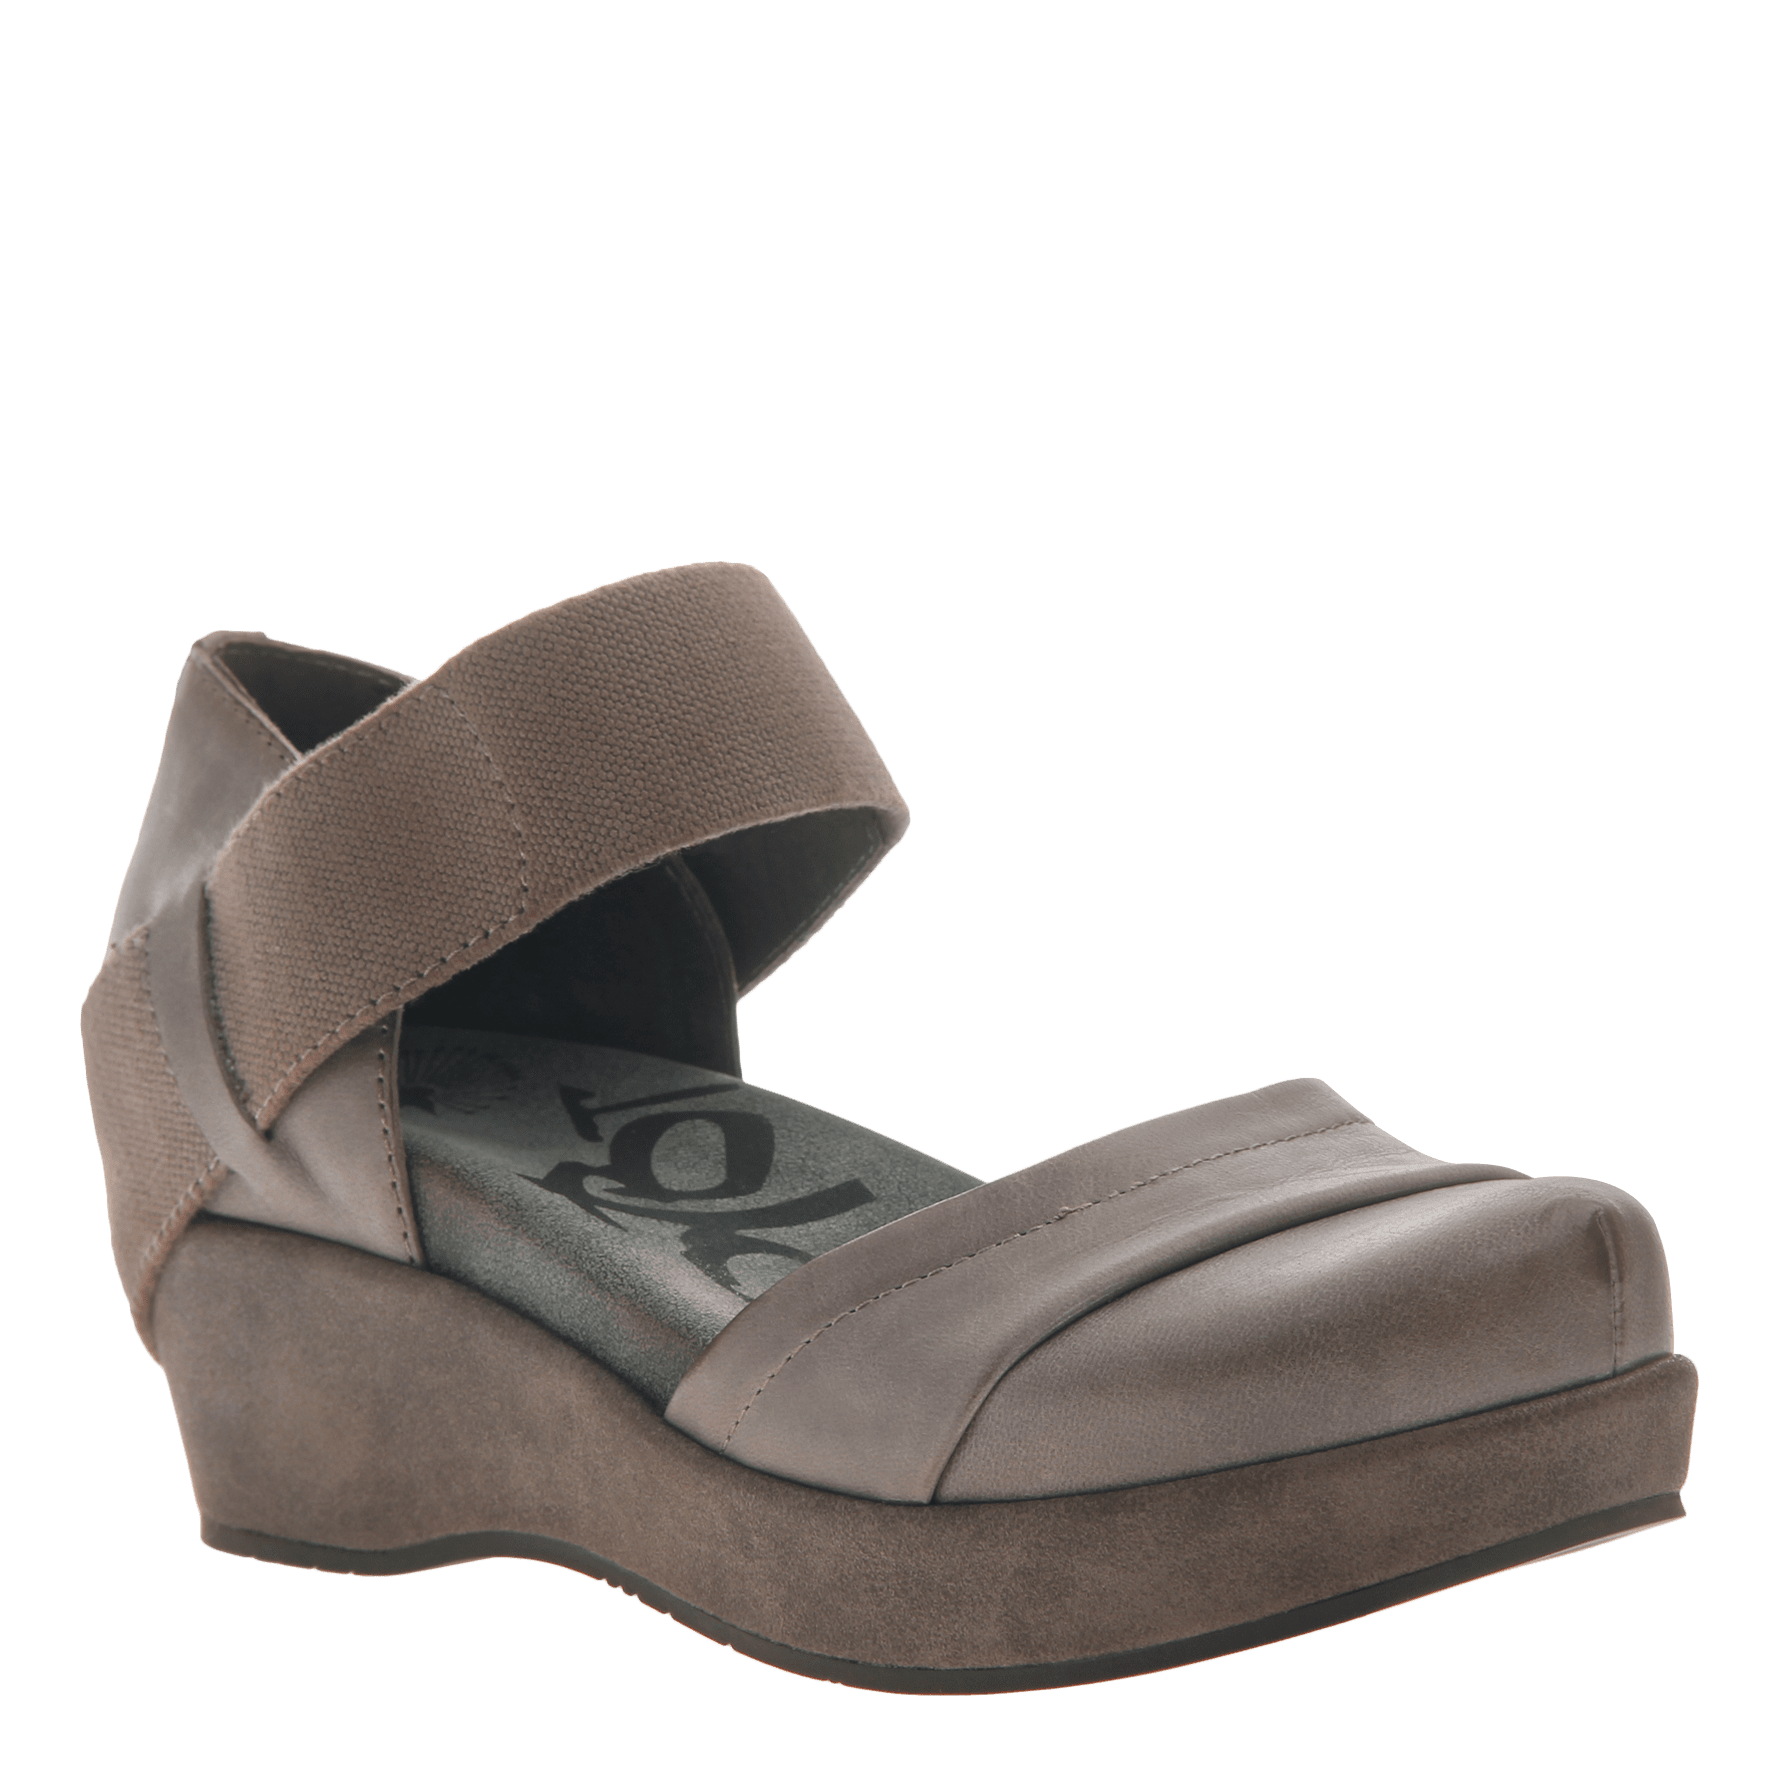 5a5dd5a1eb3 Womens closed toe wedges wander out in Zinc